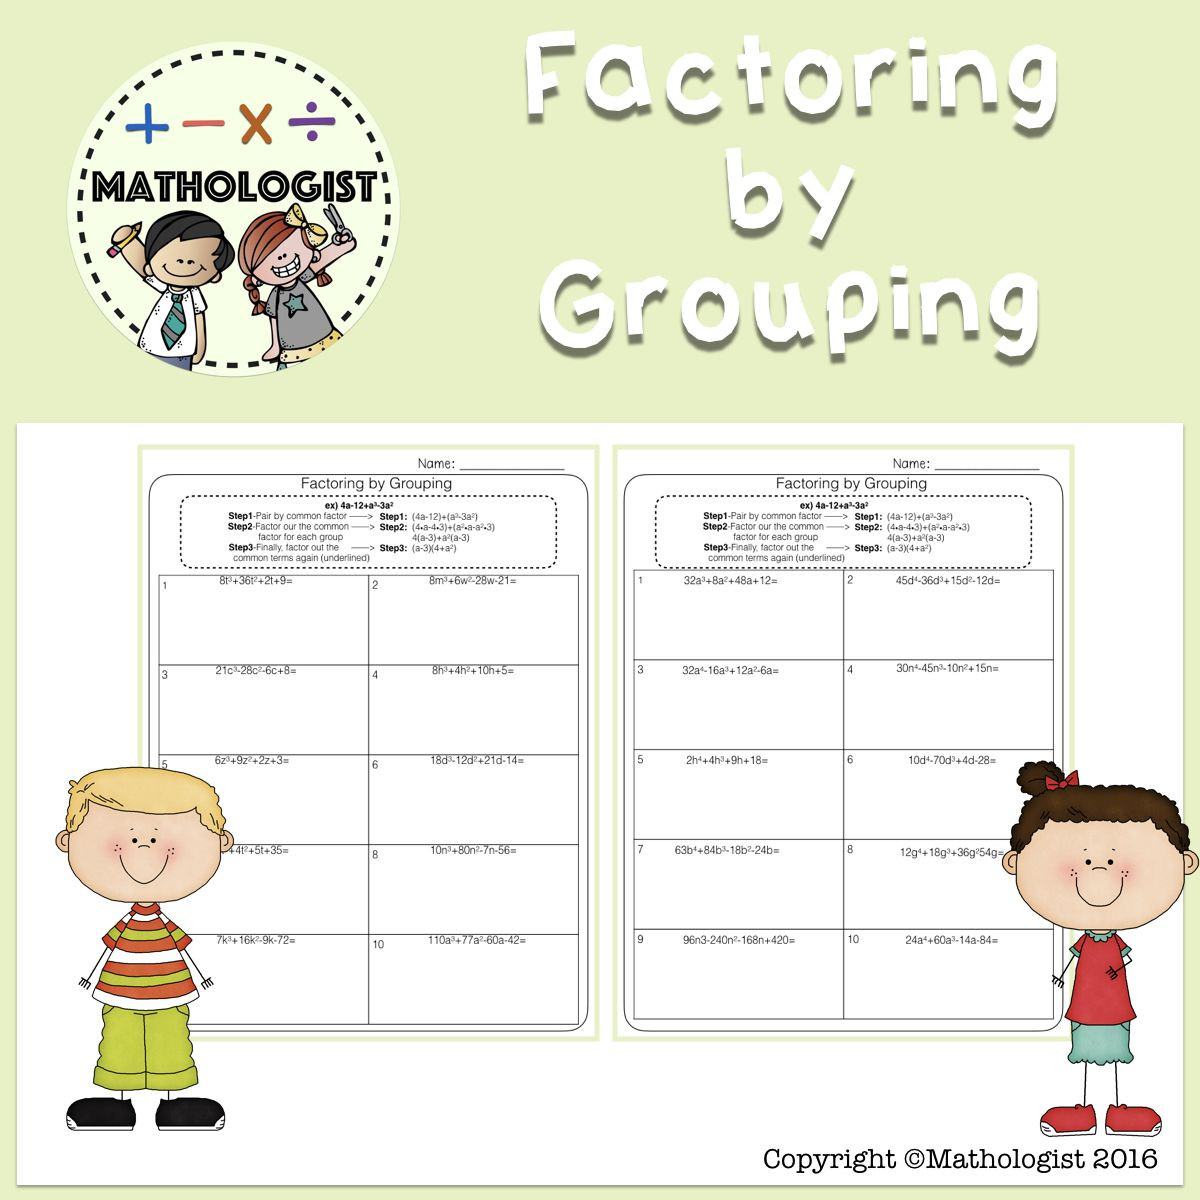 Factor by Grouping Worksheet